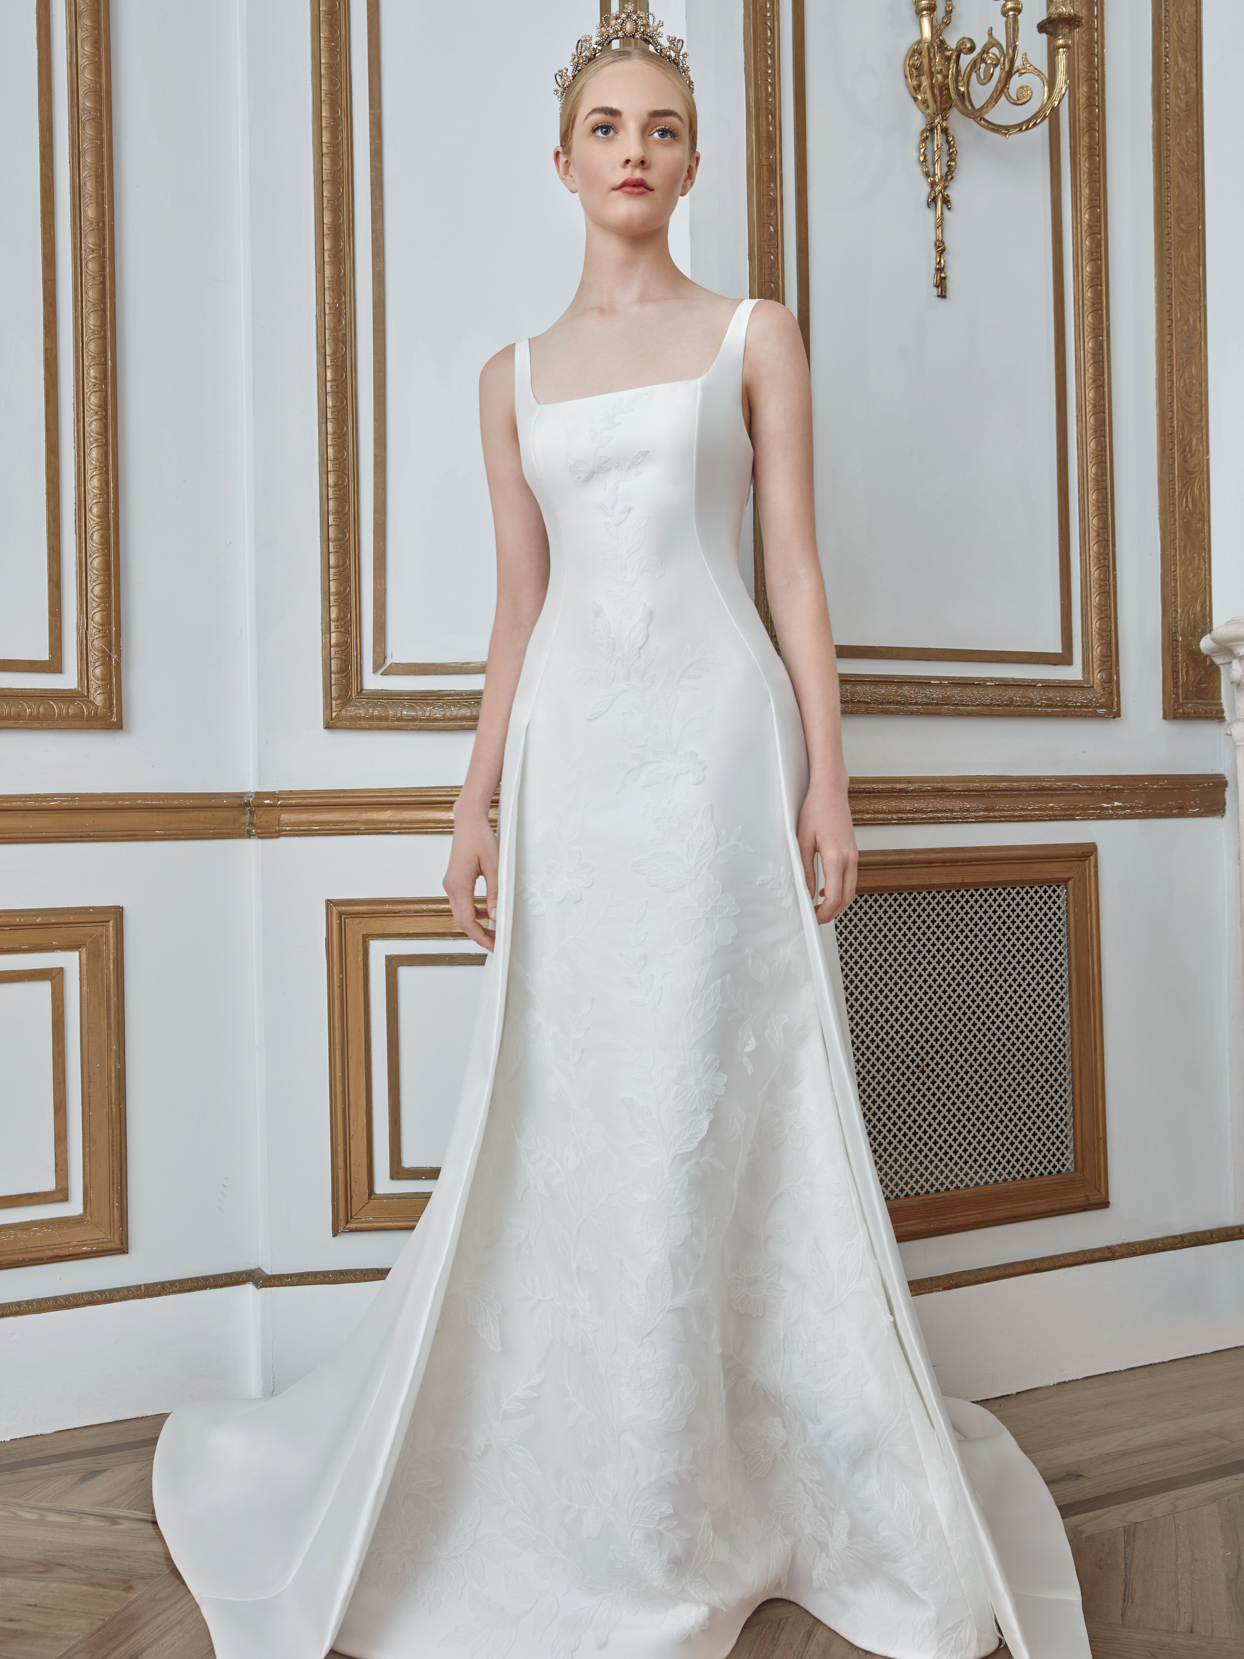 sareh nouri square neck a-line wedding dress fall 2021